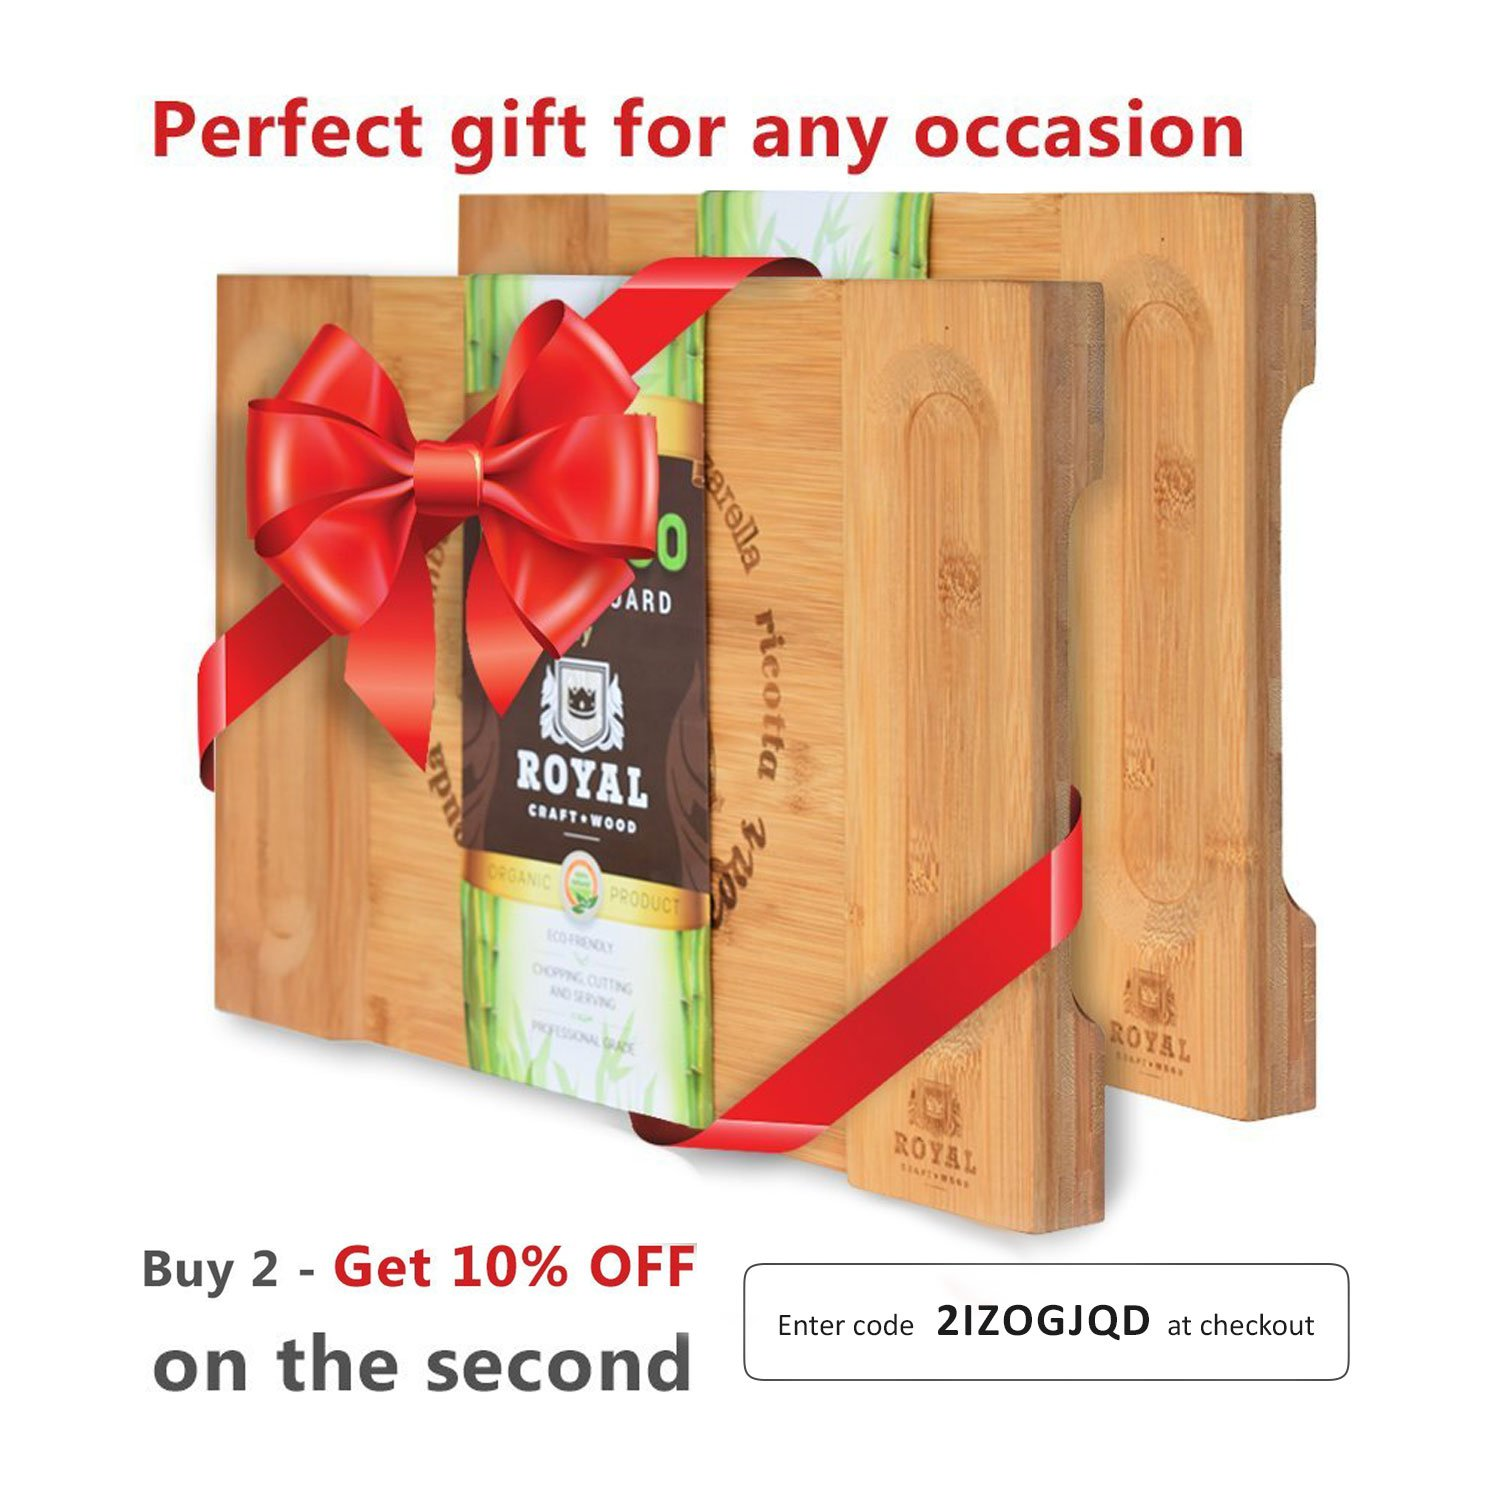 Unique Bamboo Cheese Board, Charcuterie Platter & Serving Tray for Wine, Crackers, Brie and Meat. Large & Thick Wooden Server - Fancy House Warming Gift & Perfect Choice for Gourmets (Bamboo) by Royal Craft Wood (Image #7)